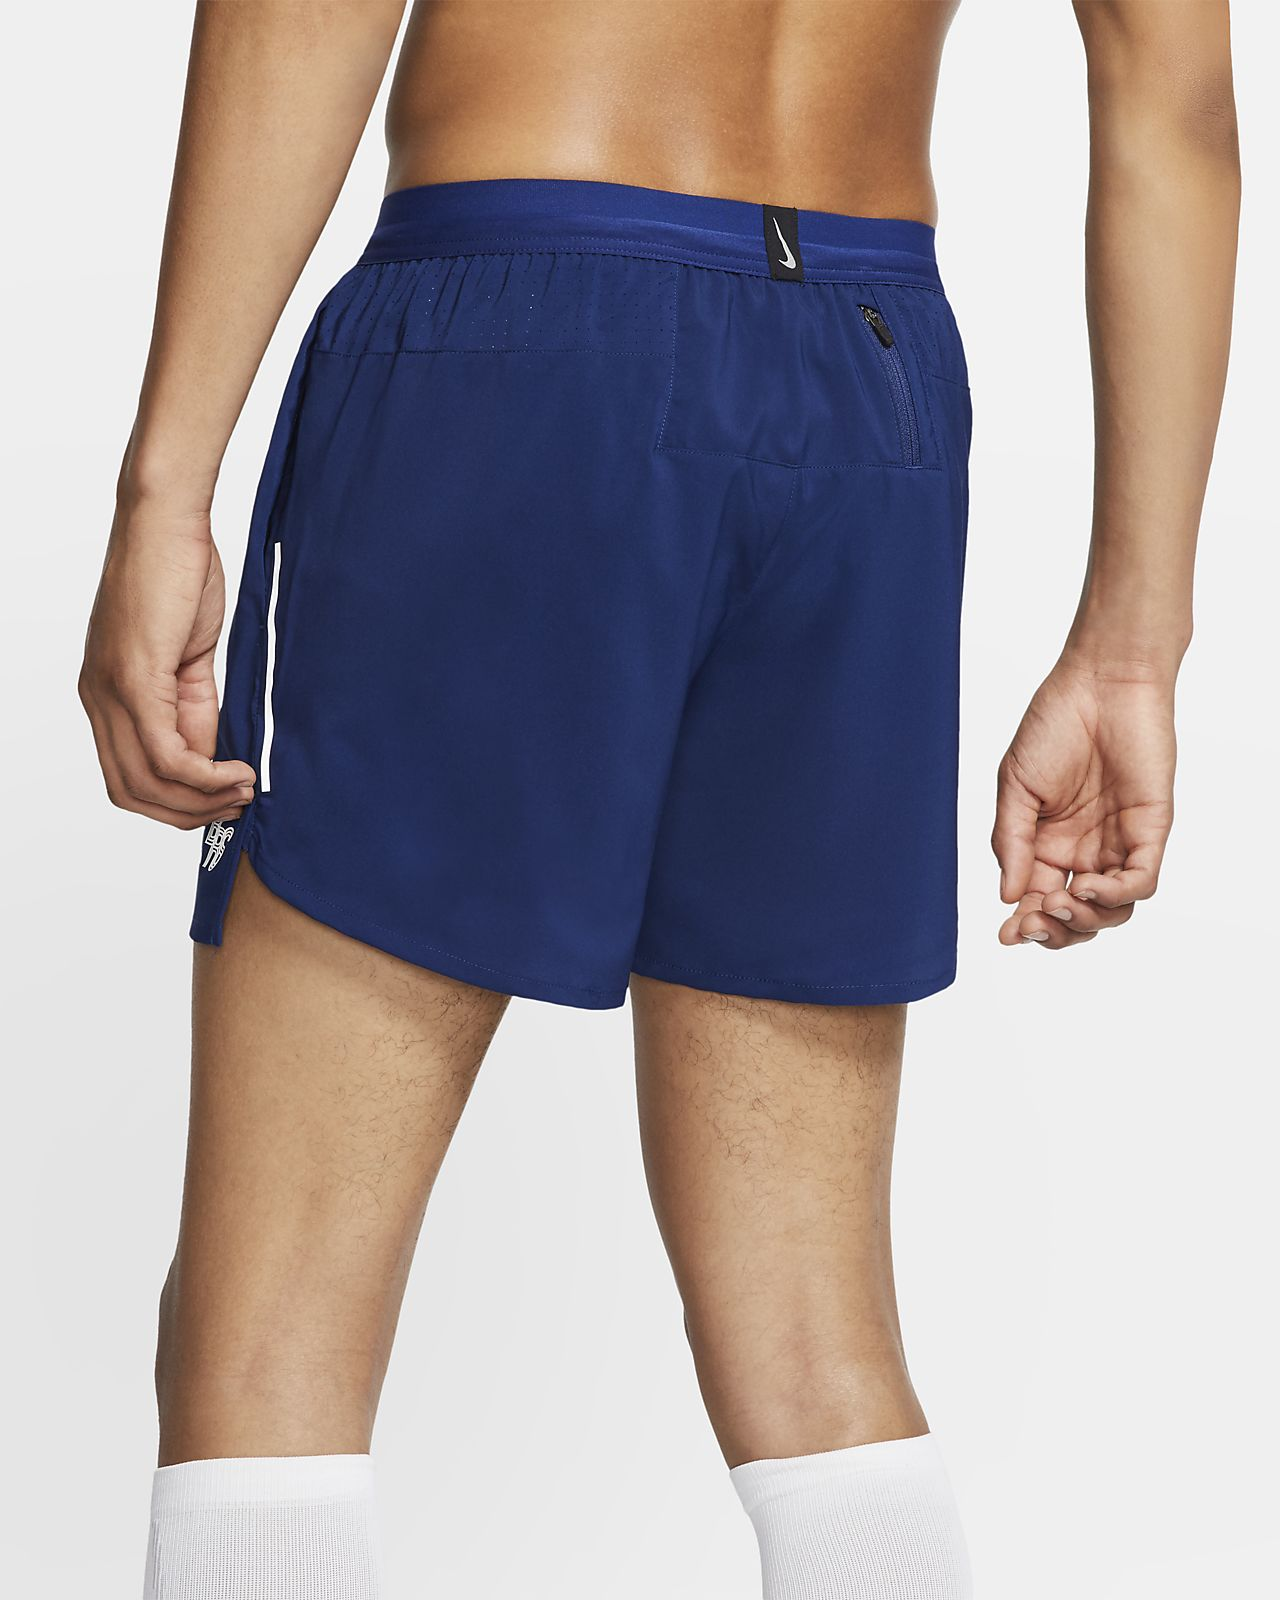 92a565e2 Nike Flex Stride BRS Men's 13cm (approx.) Lined Running Shorts